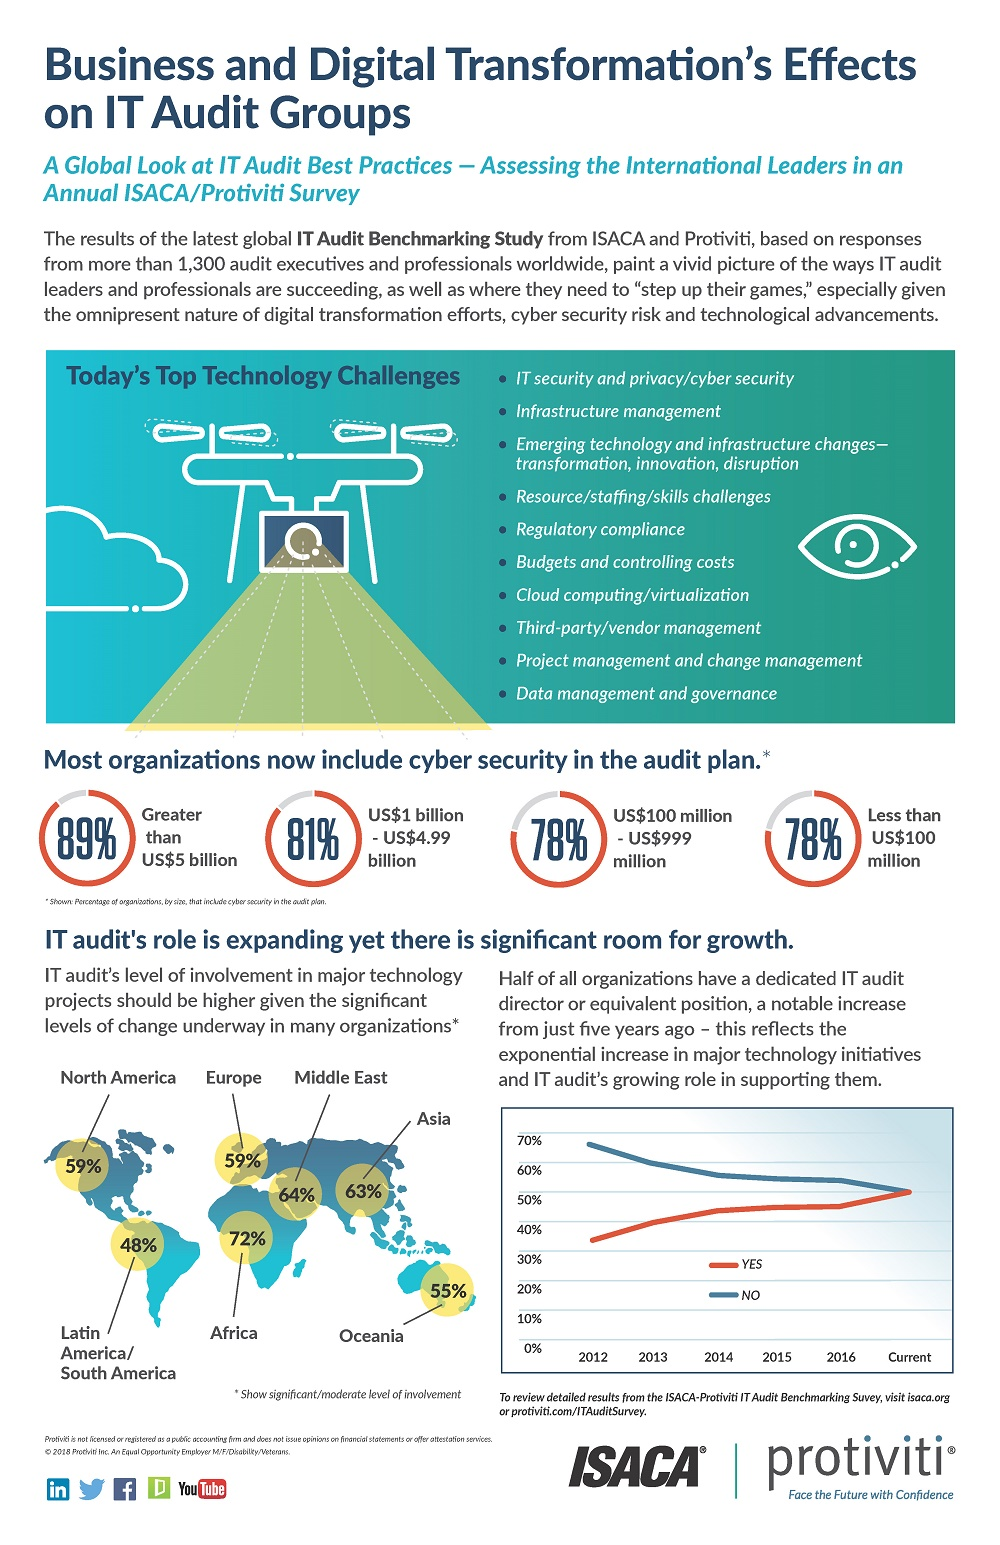 7th Annual IT Audit Benchmarking Survey Infographic